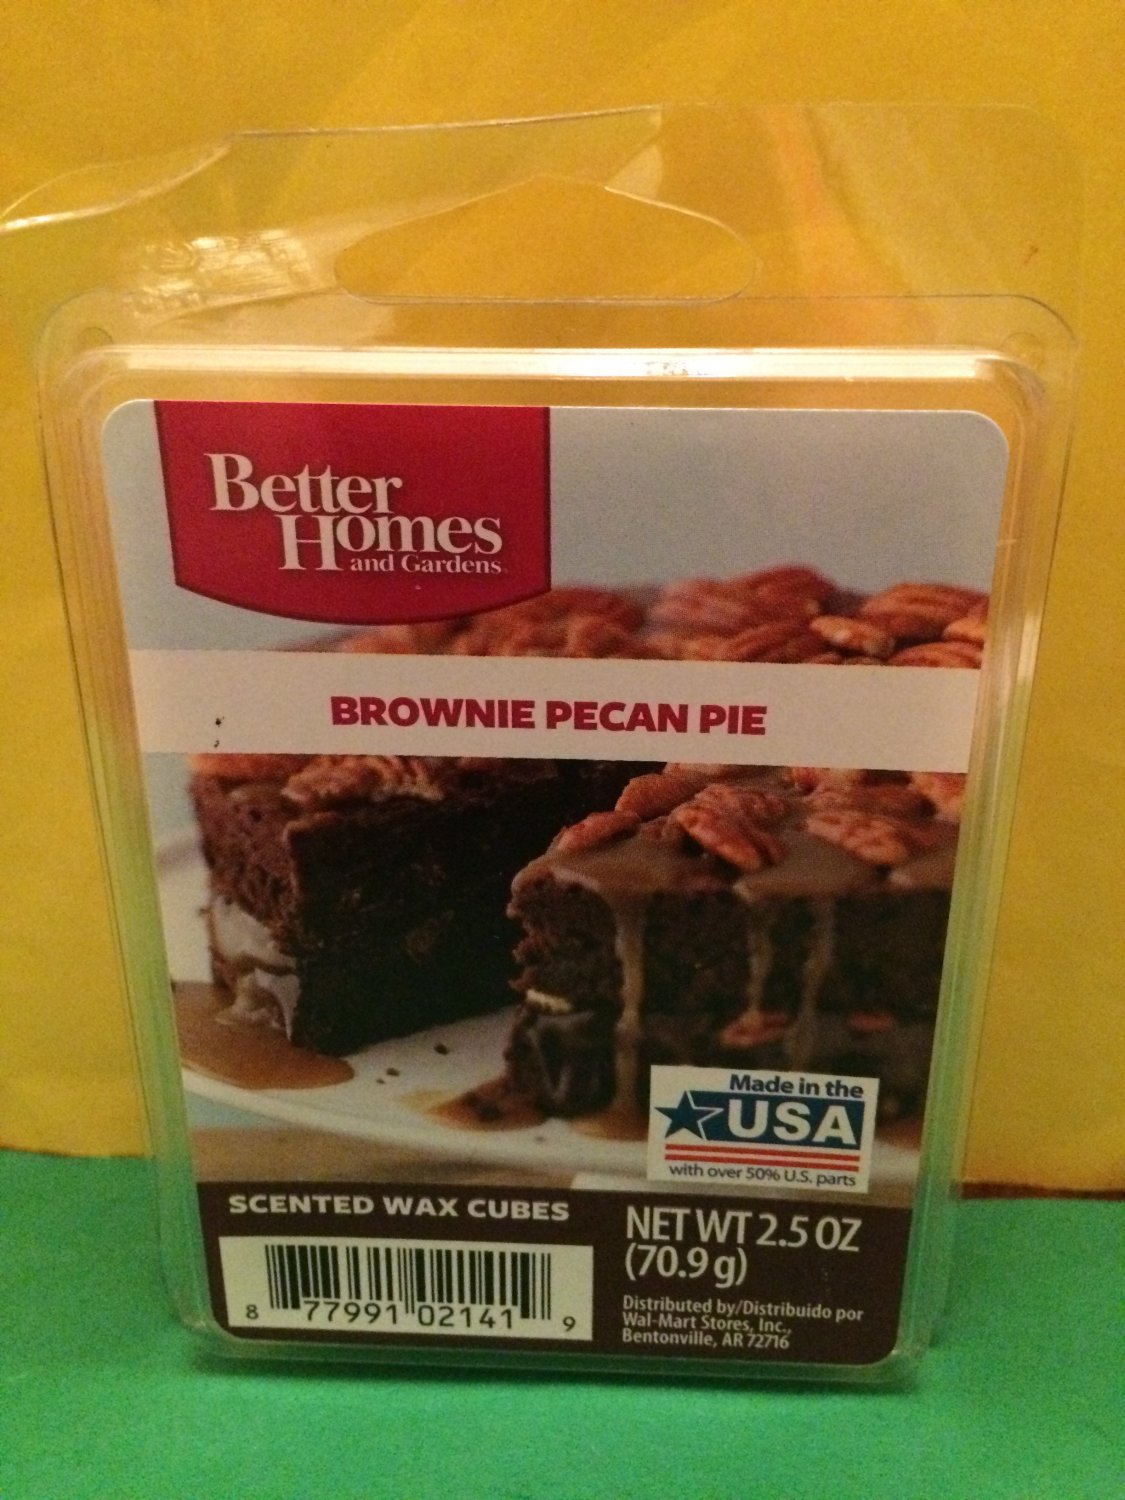 Better homes and gardens brownie pecan pie scented wax cubes - Better homes and gardens scented wax cubes ...